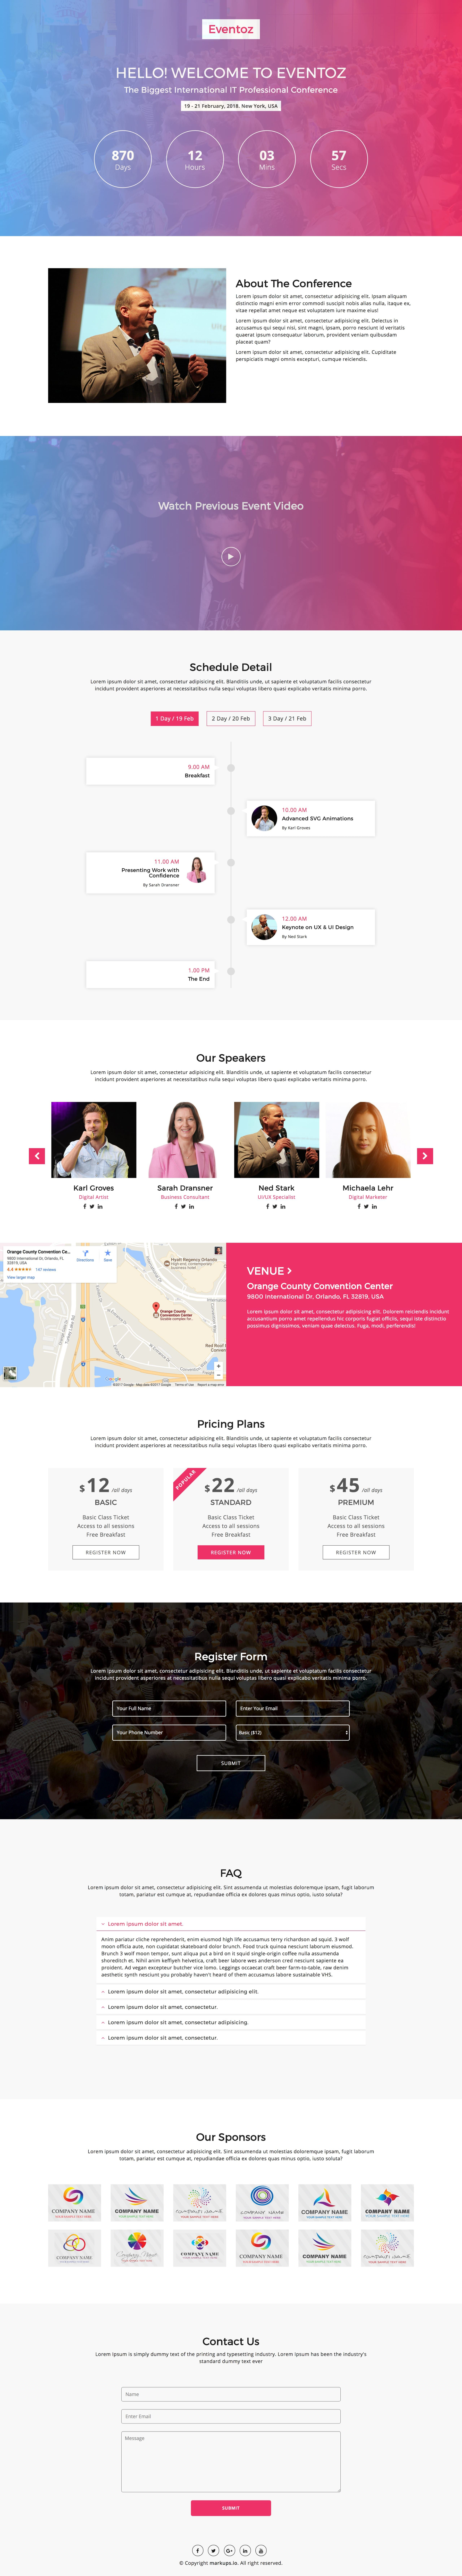 Eventoz' is a FREE One Page Event HTML template by MarkUps